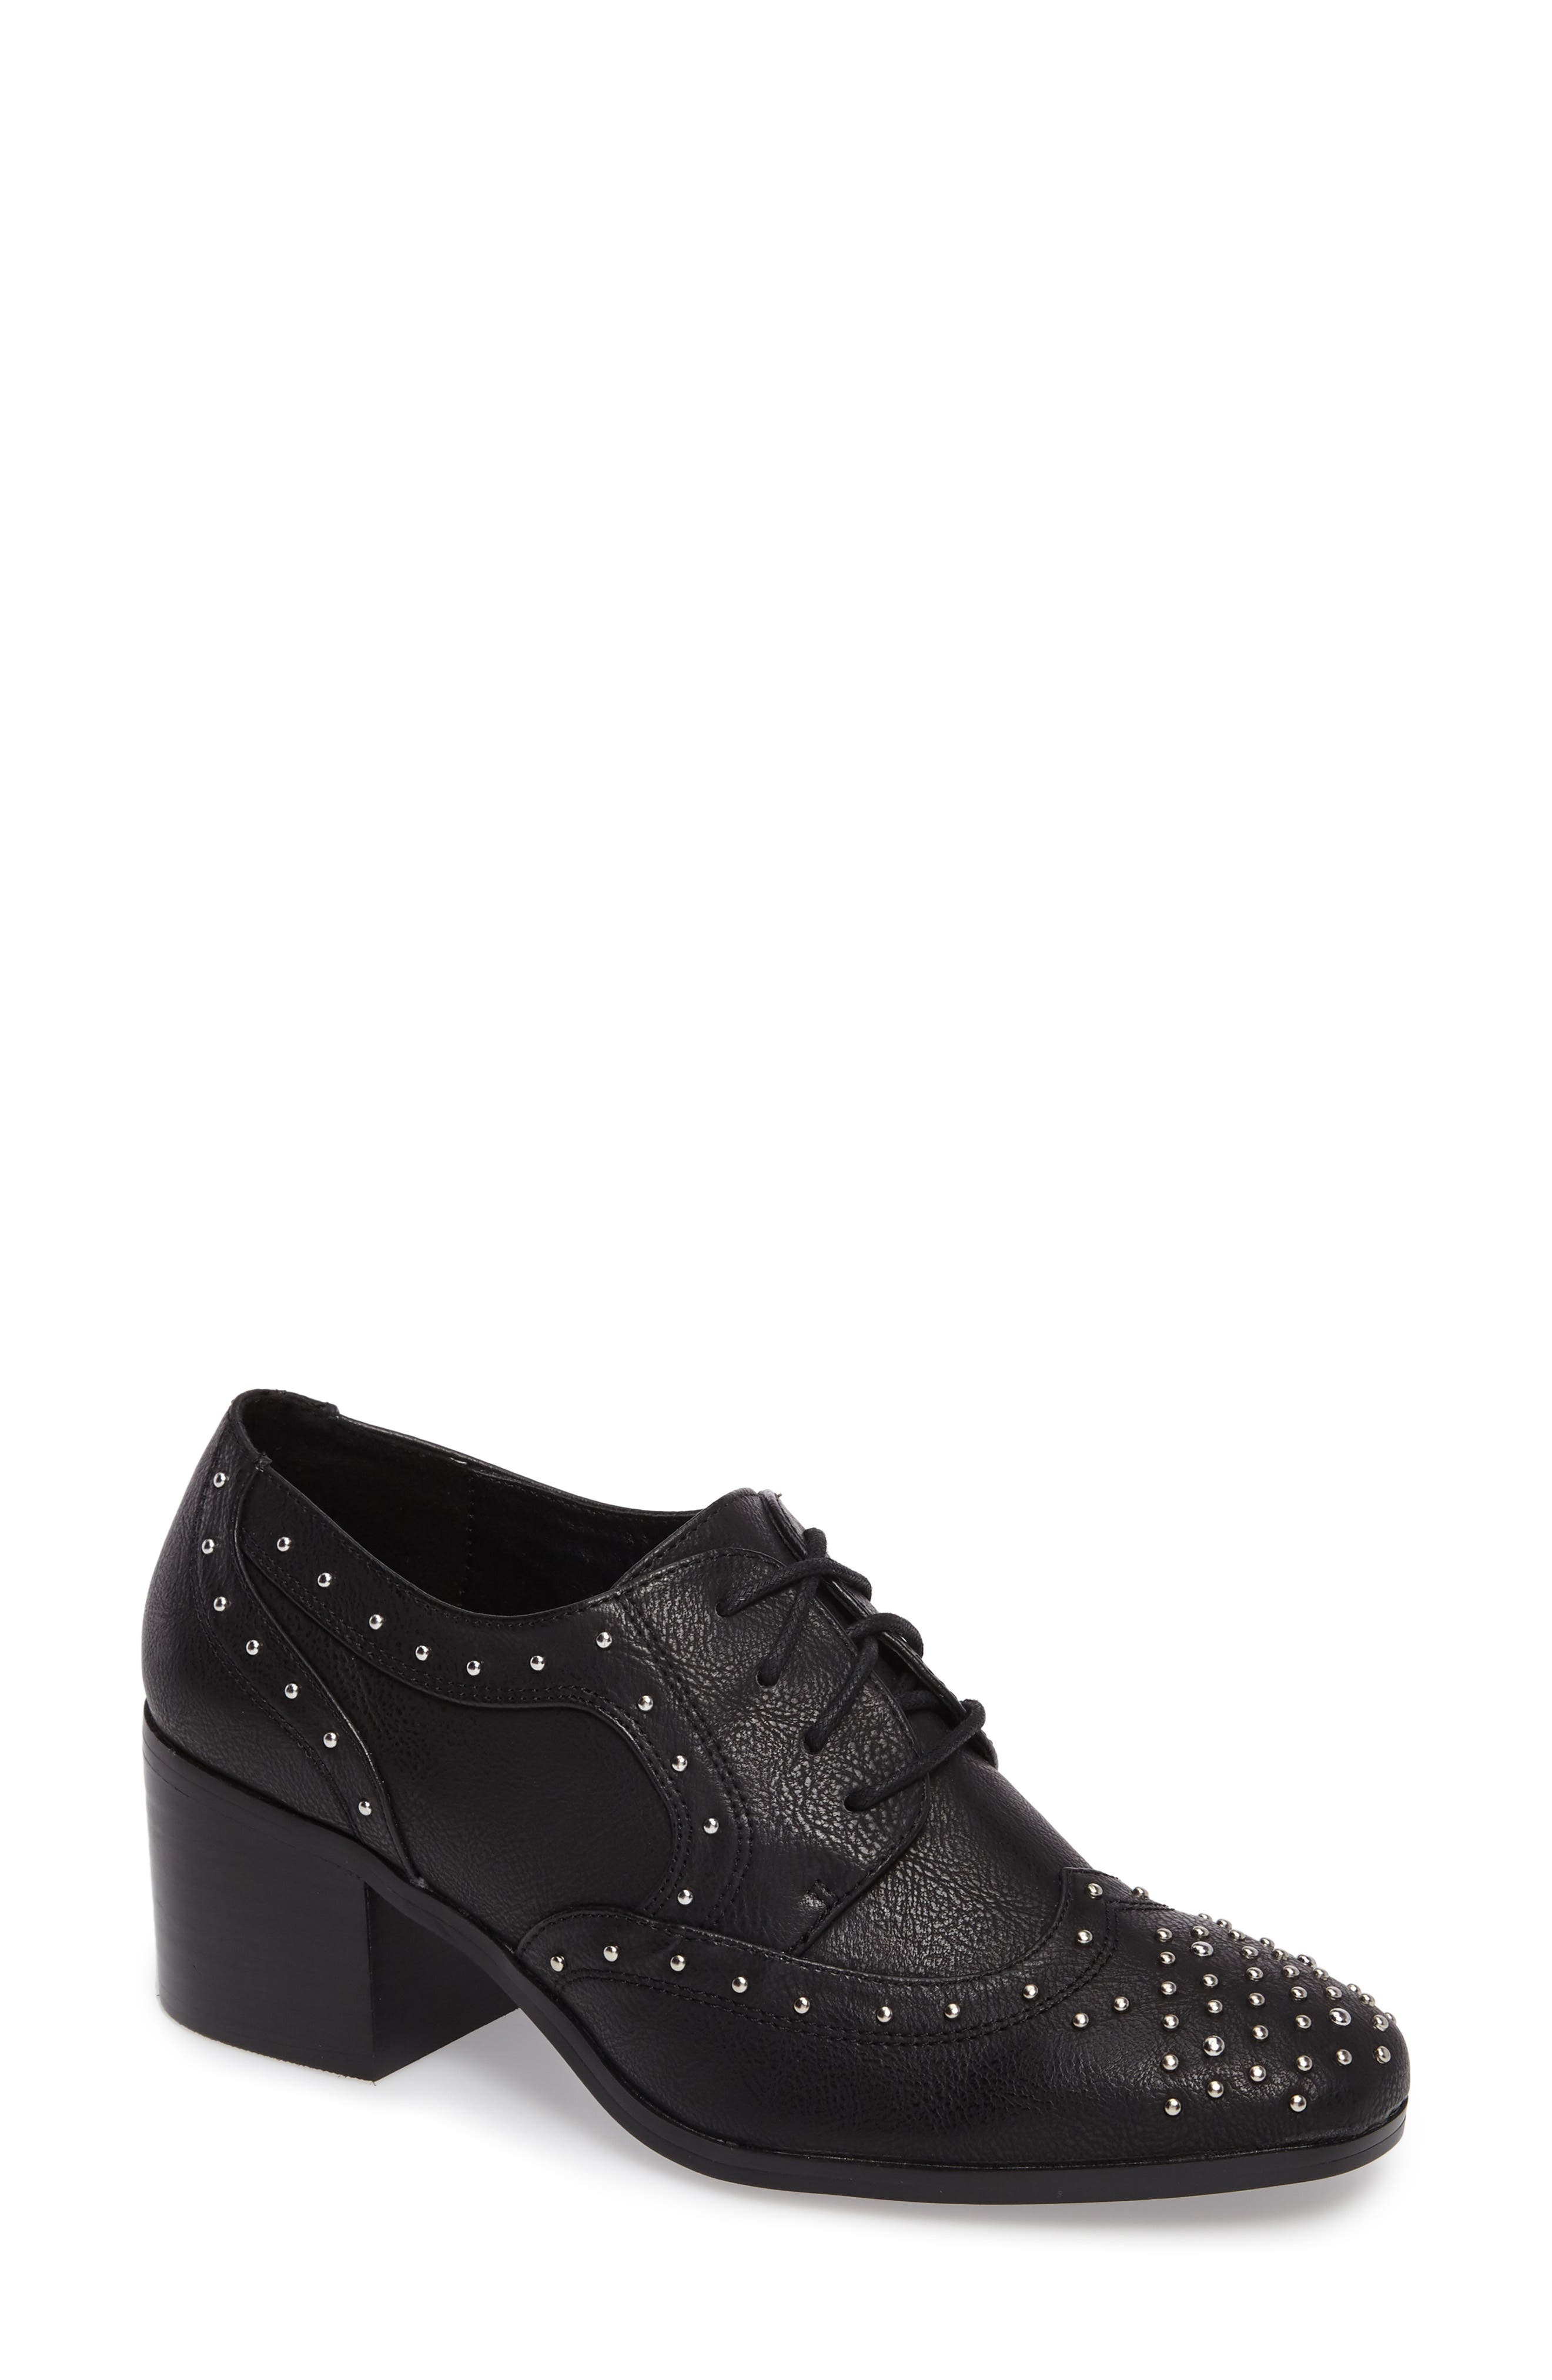 Main Image - Coconuts by Matisse Fleur Studded Oxford Pump (Women)